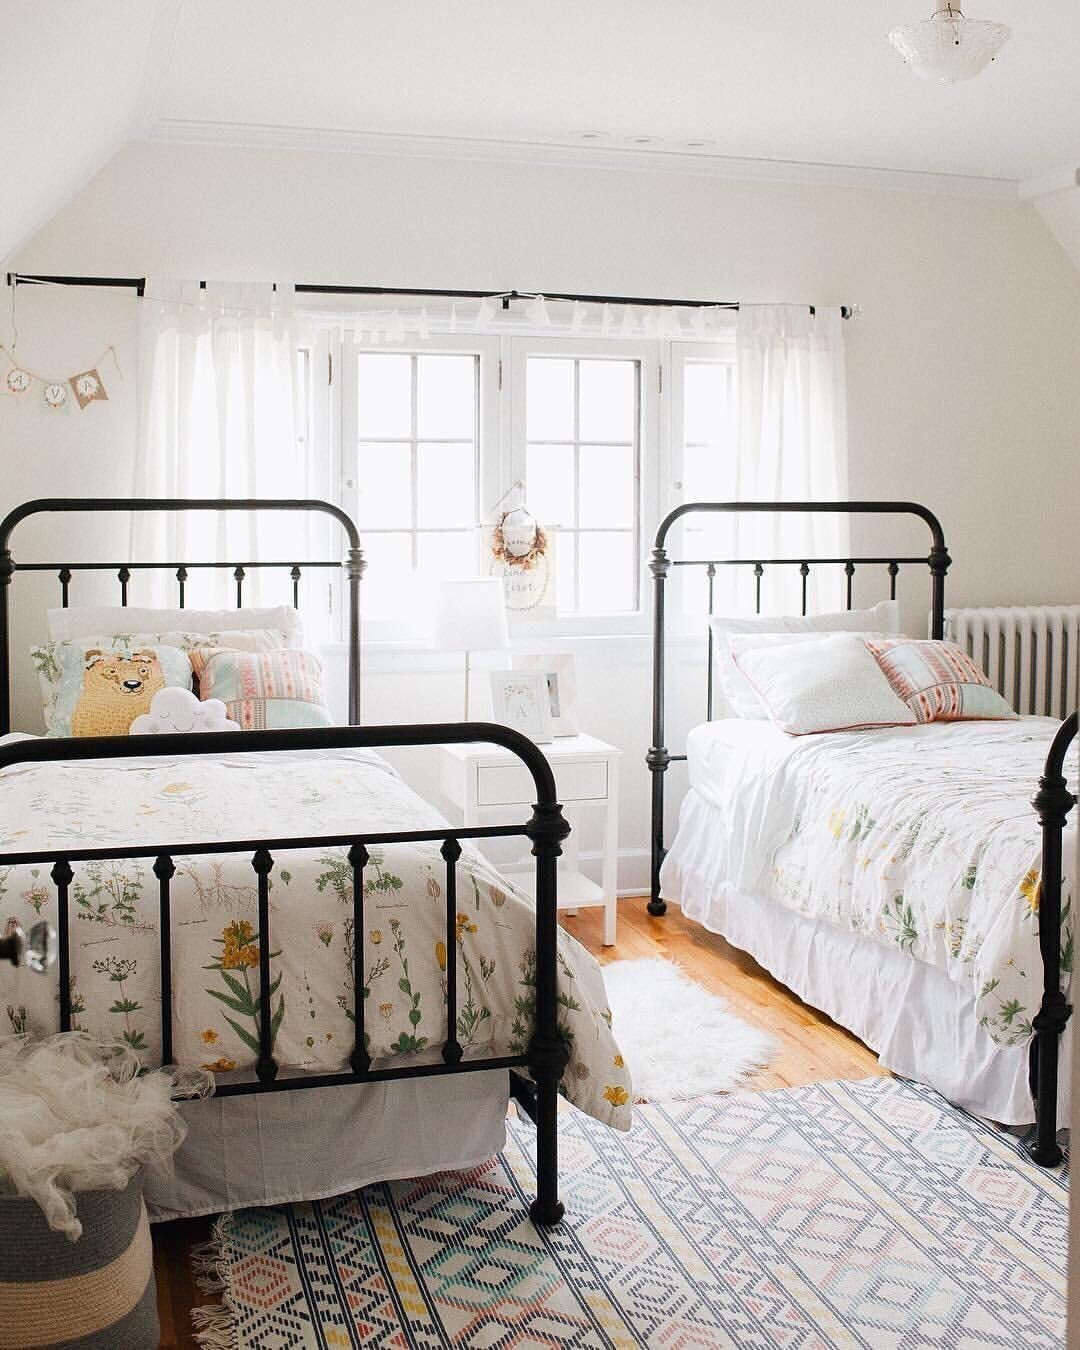 43 Simple Twin Bed Bedroom Decoration Farm House Living Room Kids Bedroom Designs Shared Bedrooms #twin #bed #in #living #room